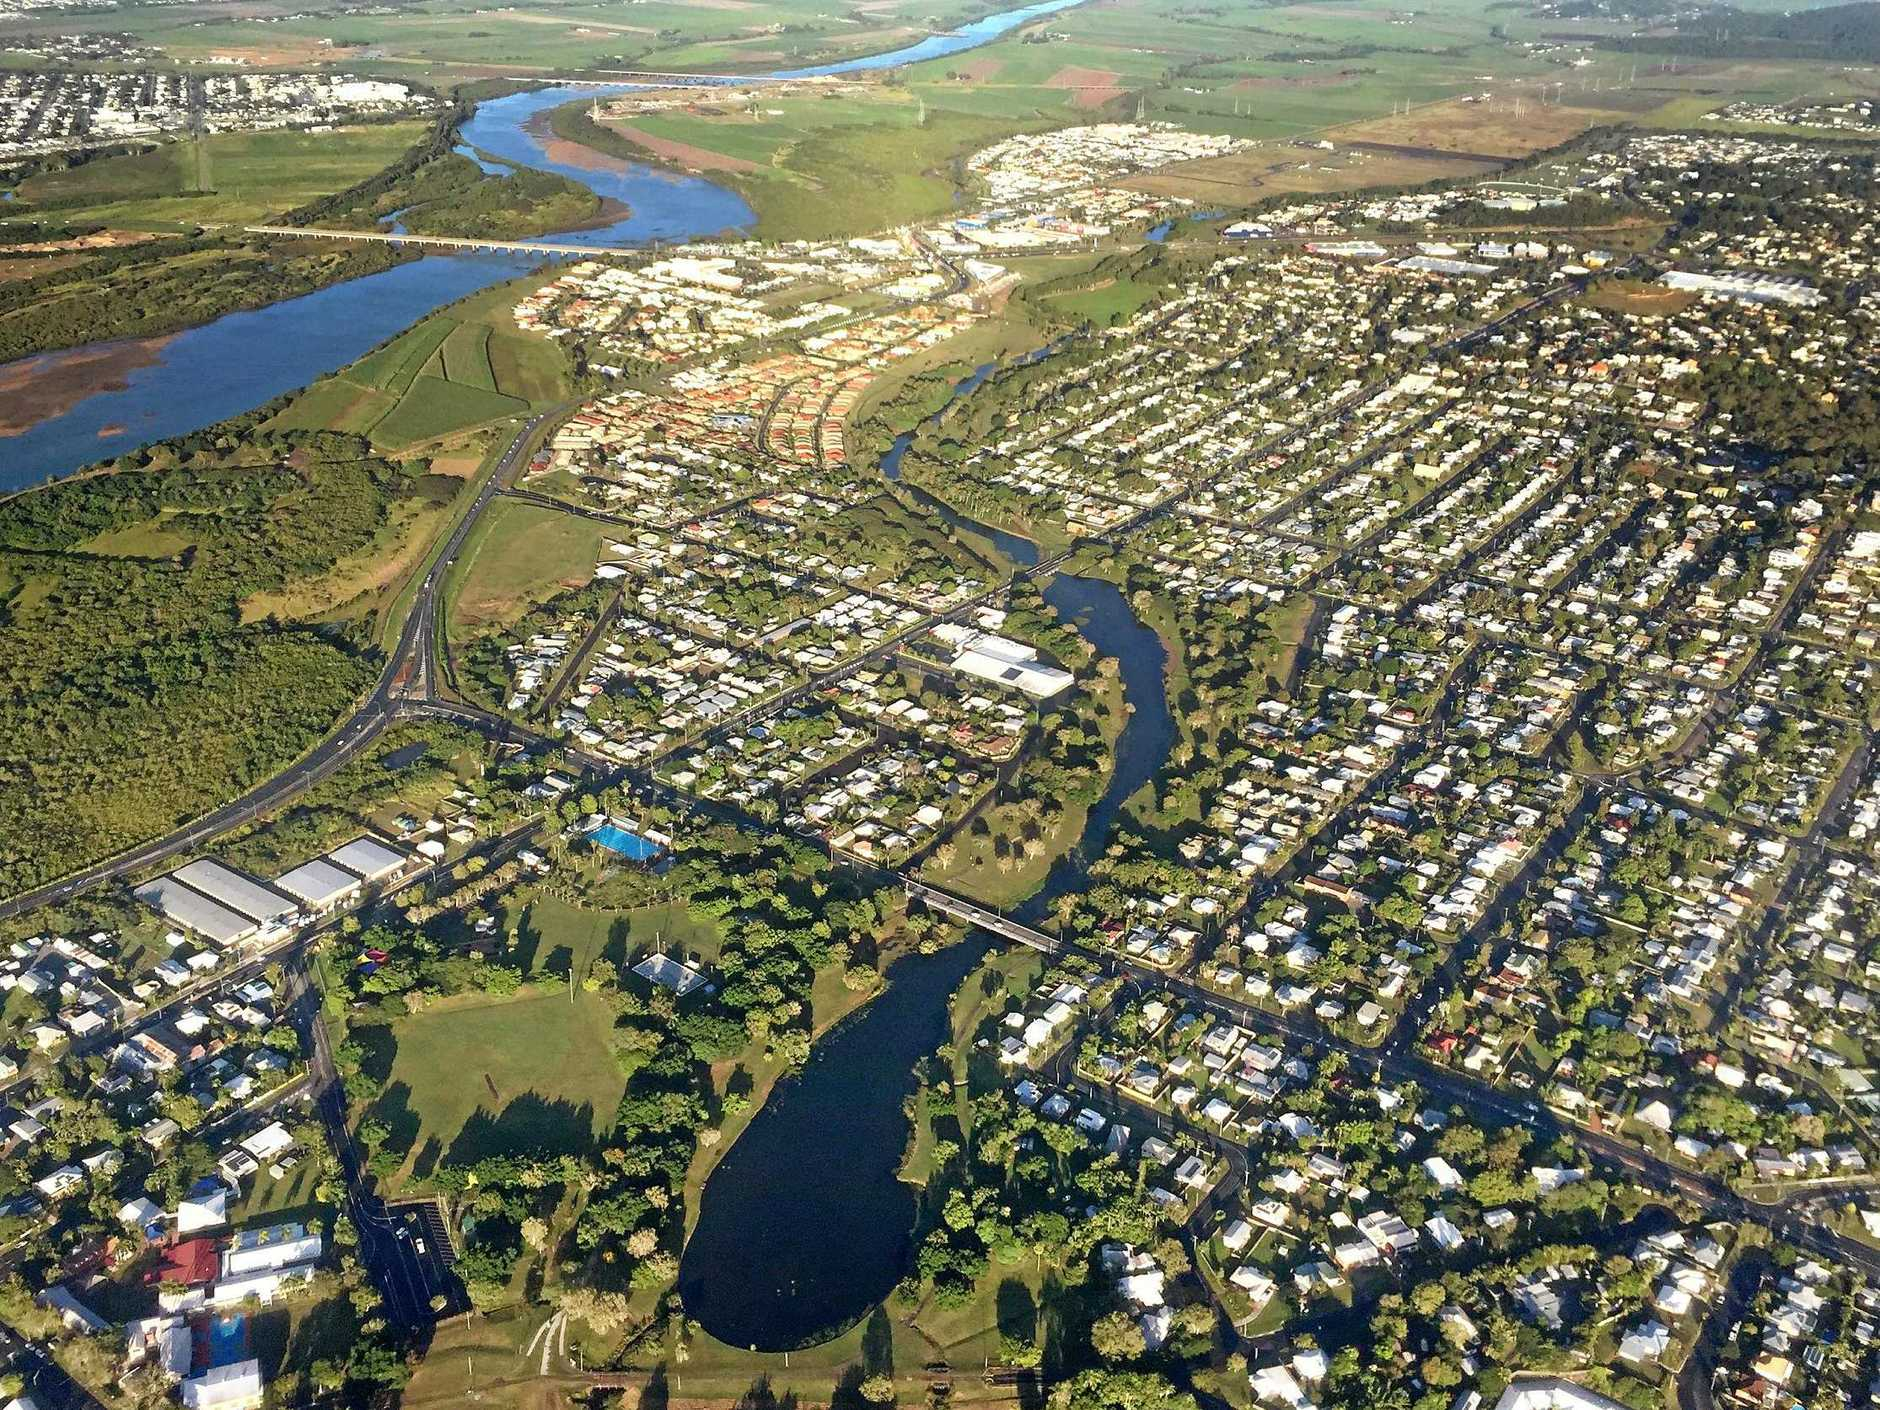 Aerial images over Mackay region. North Mackay and Gooseponds